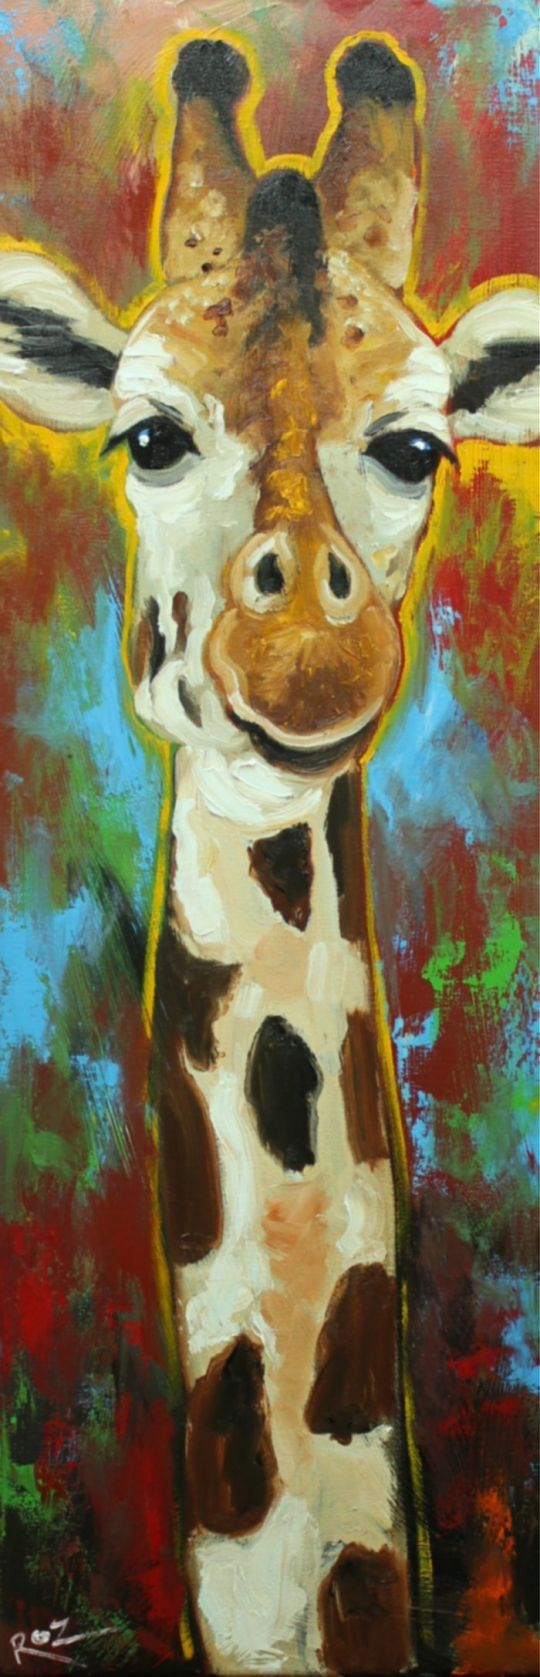 Giraffe, drunkencows.com, by Roz